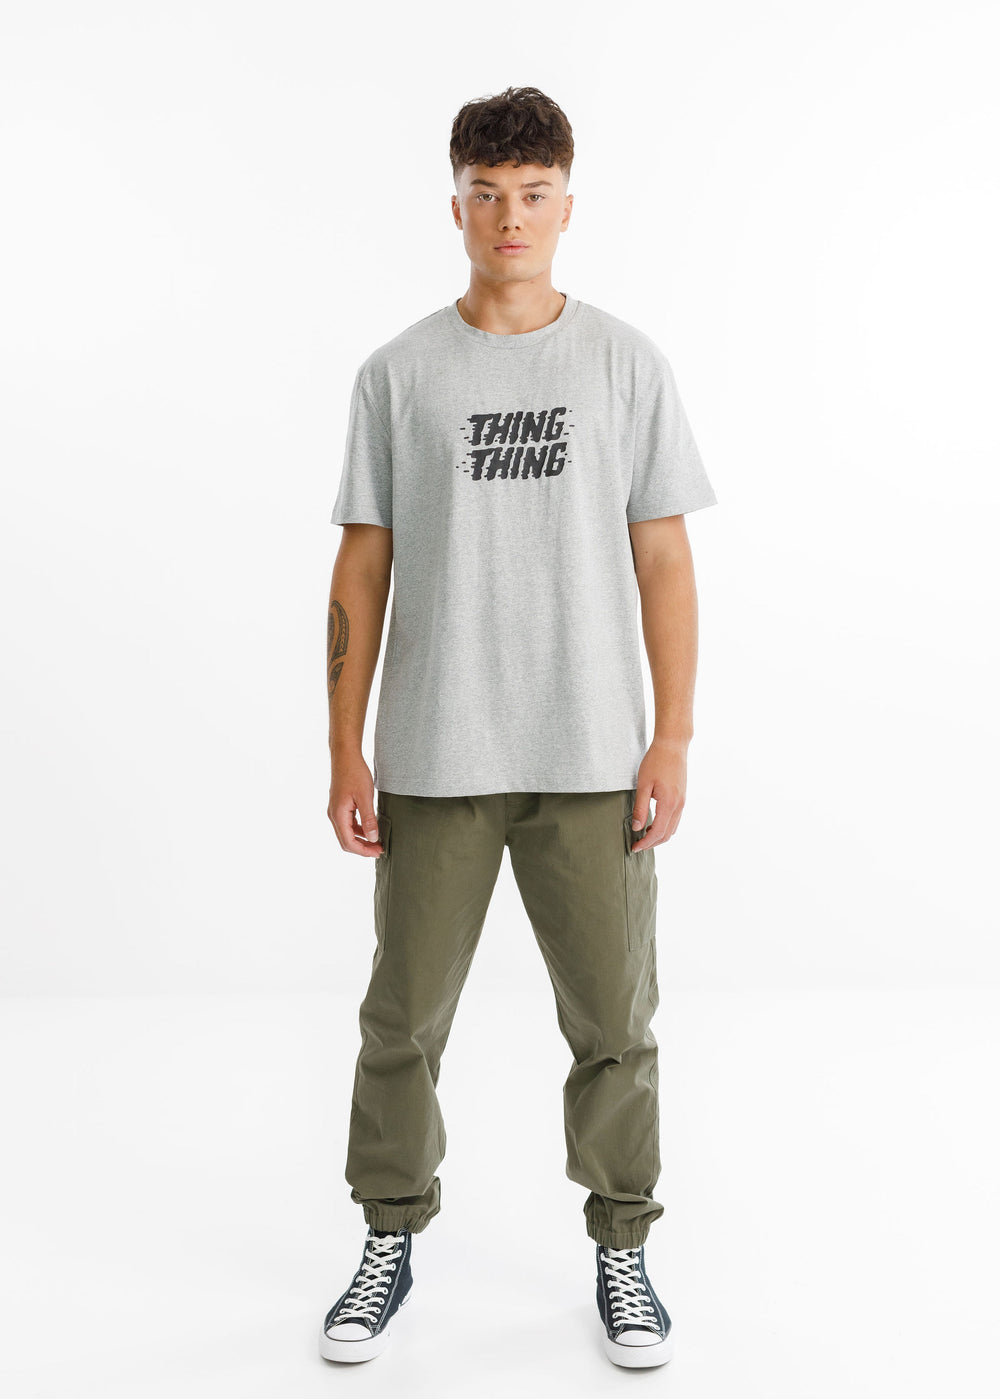 SS TEE - Tracer Marle